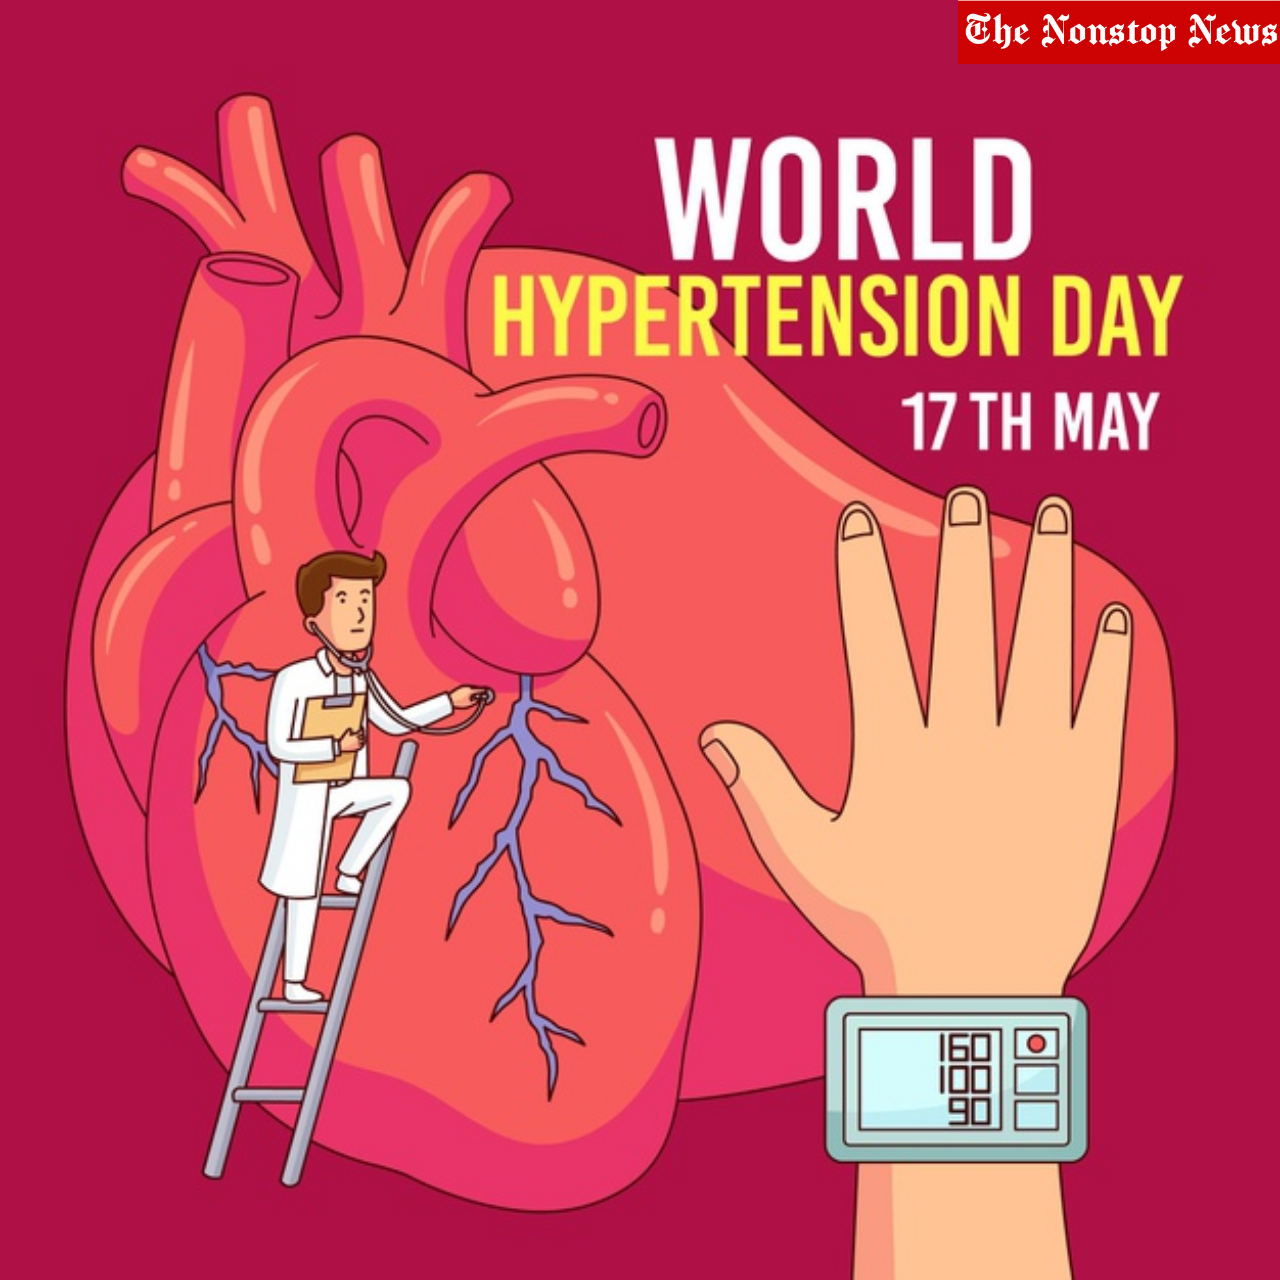 World Hypertension Day 2021: Theme, Poster, Quotes, and Images to Share